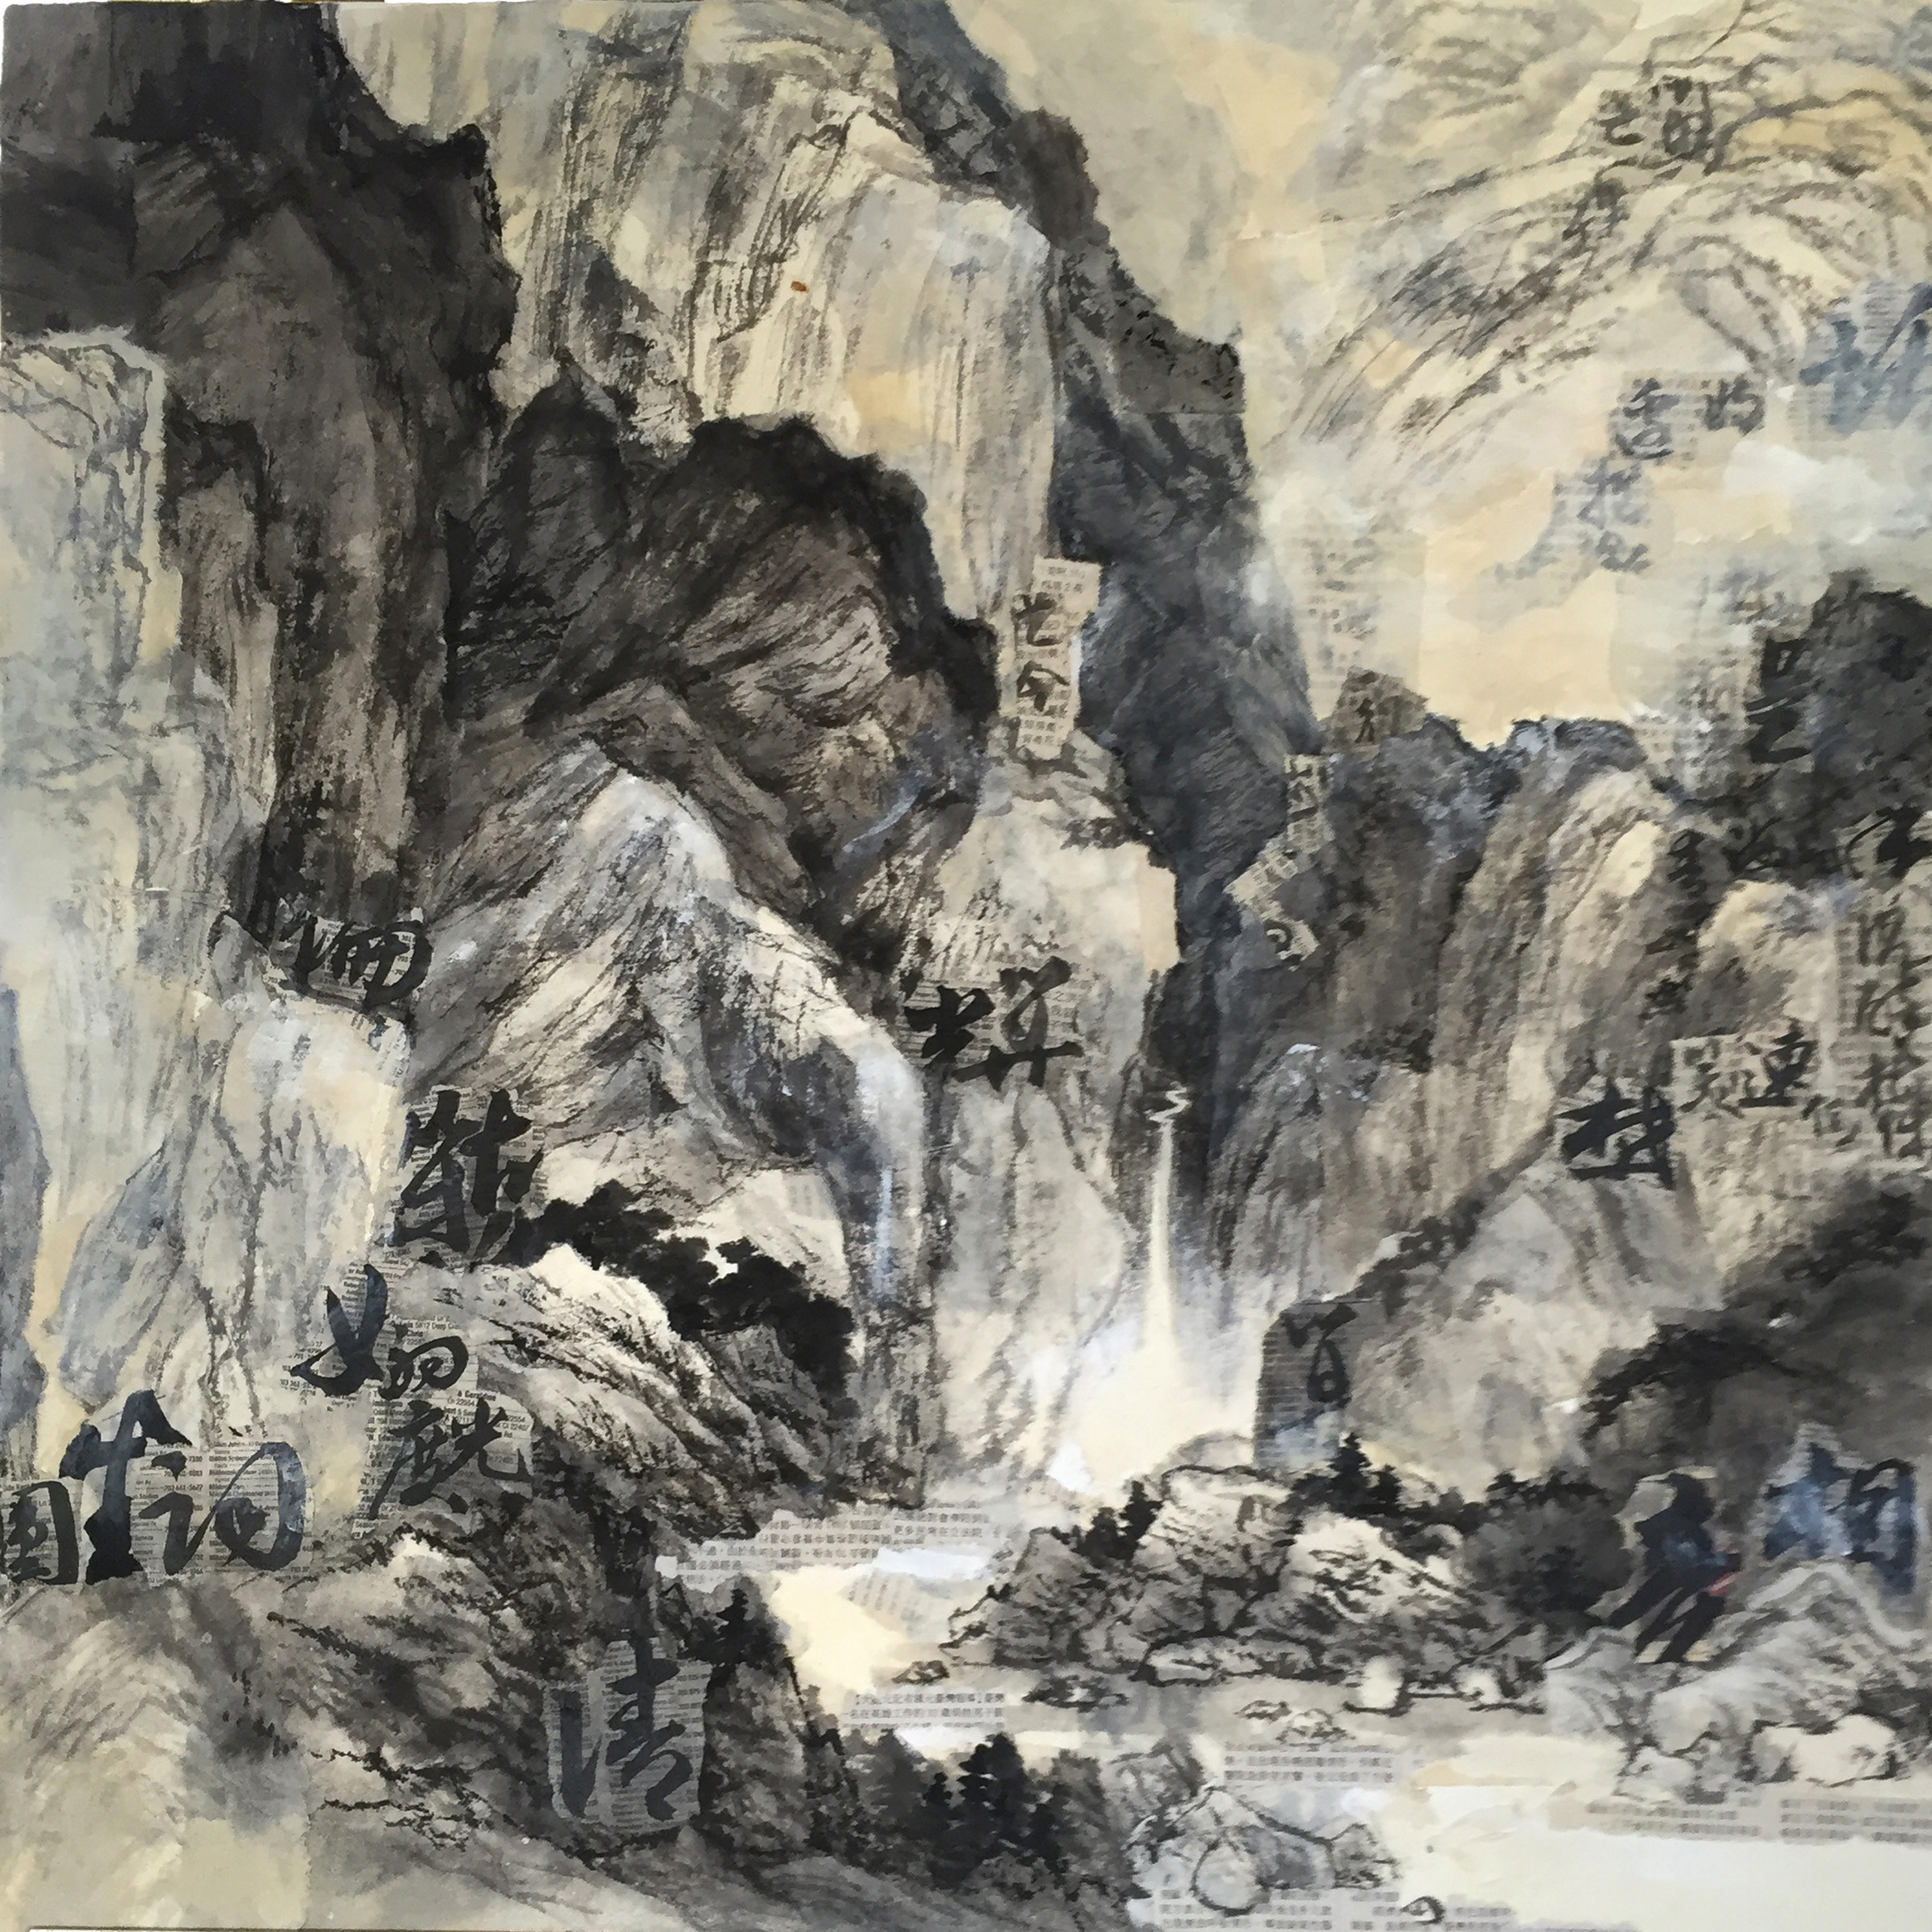 Landscape of Mountains collaged with Calligraphy of Chinese Poetry